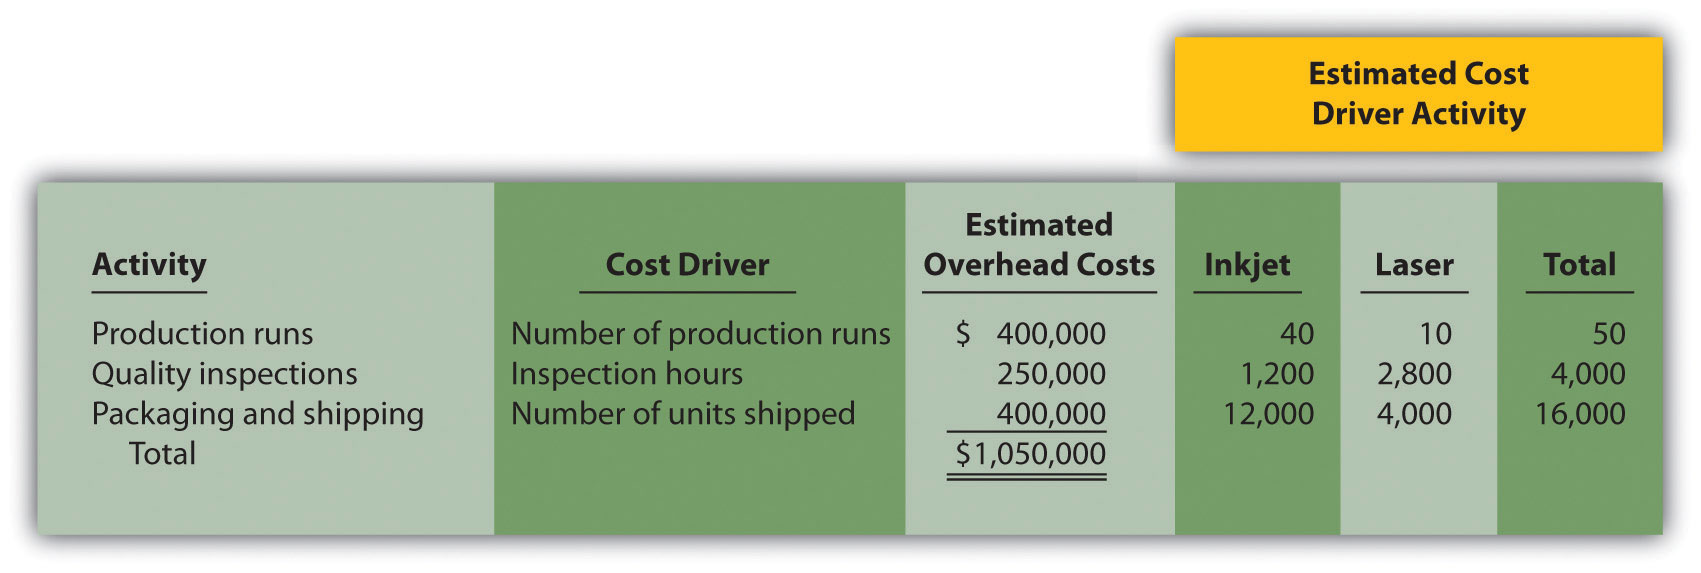 Cost Drivers For Designing New Models